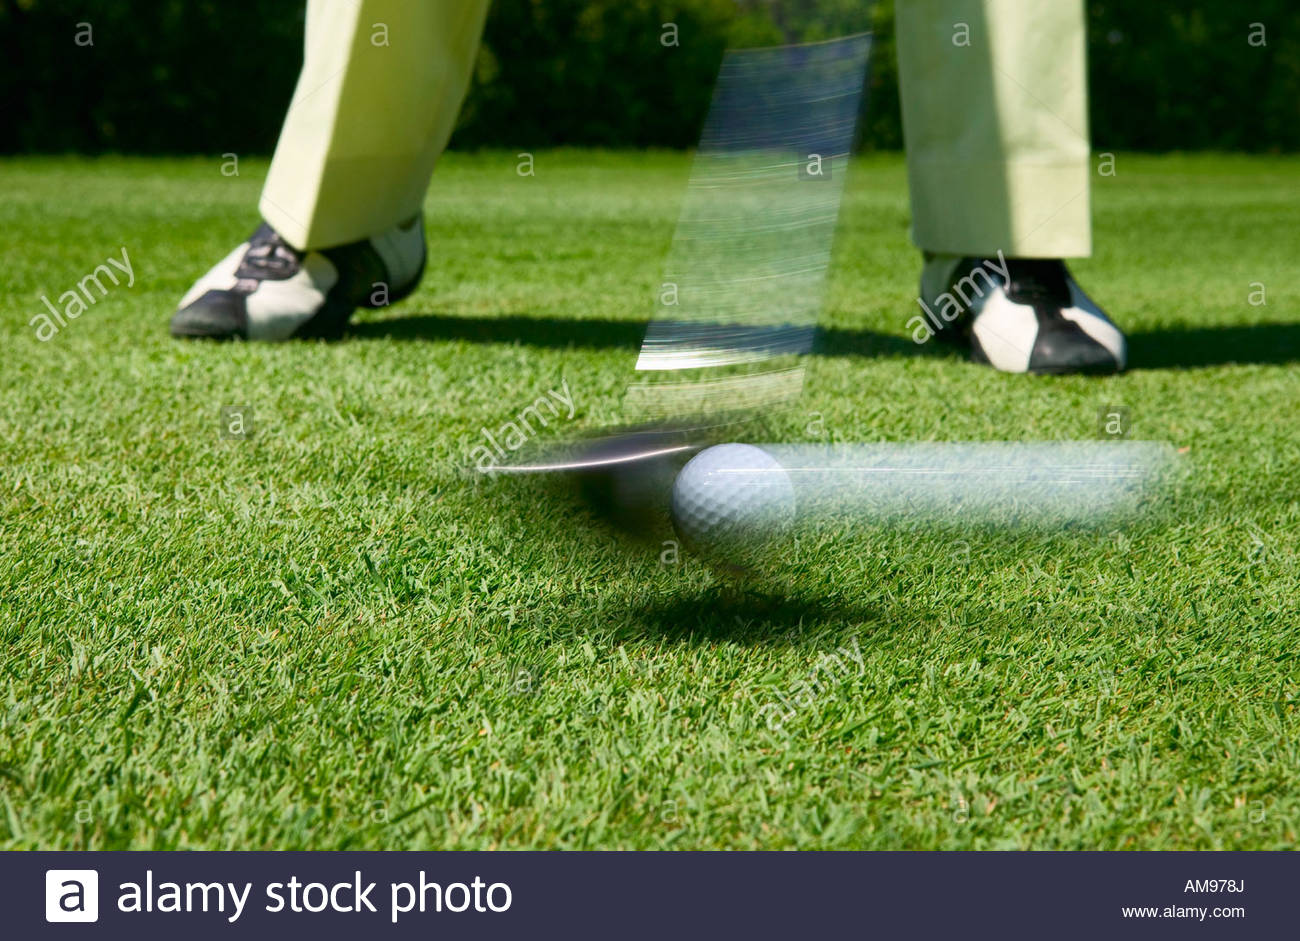 Person teeing off in blurred motion - Stock Image